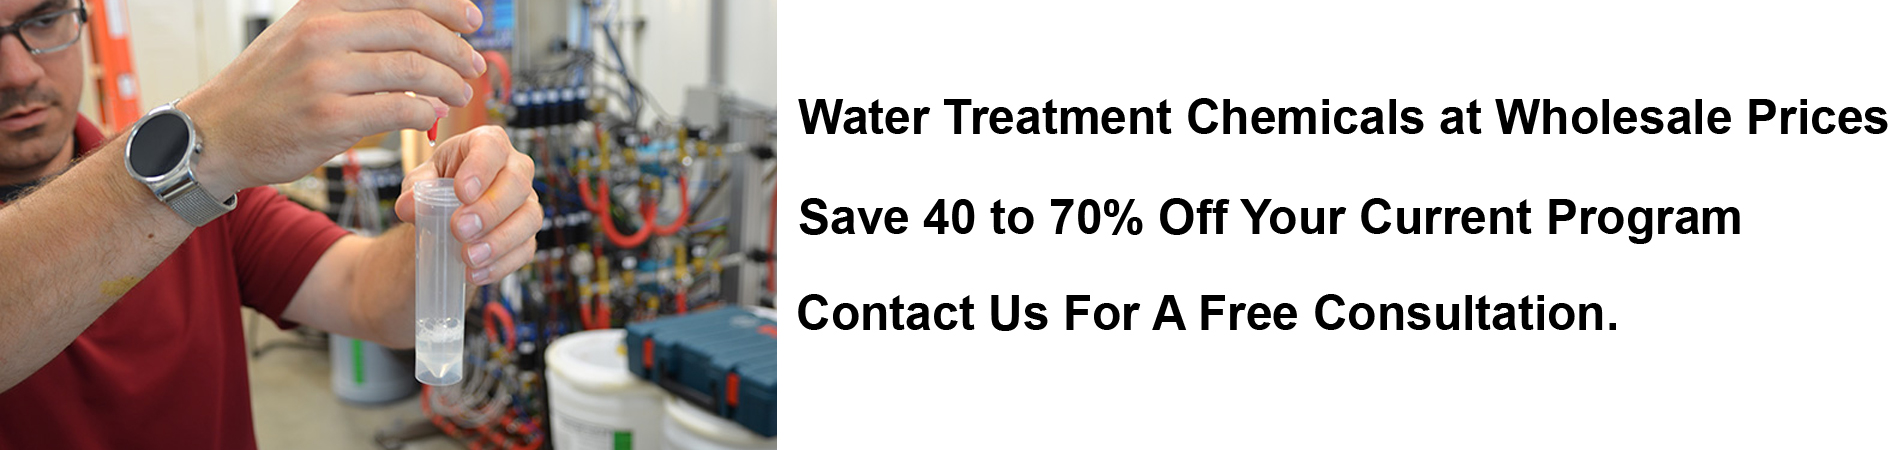 Water Treatment Chemical Sales